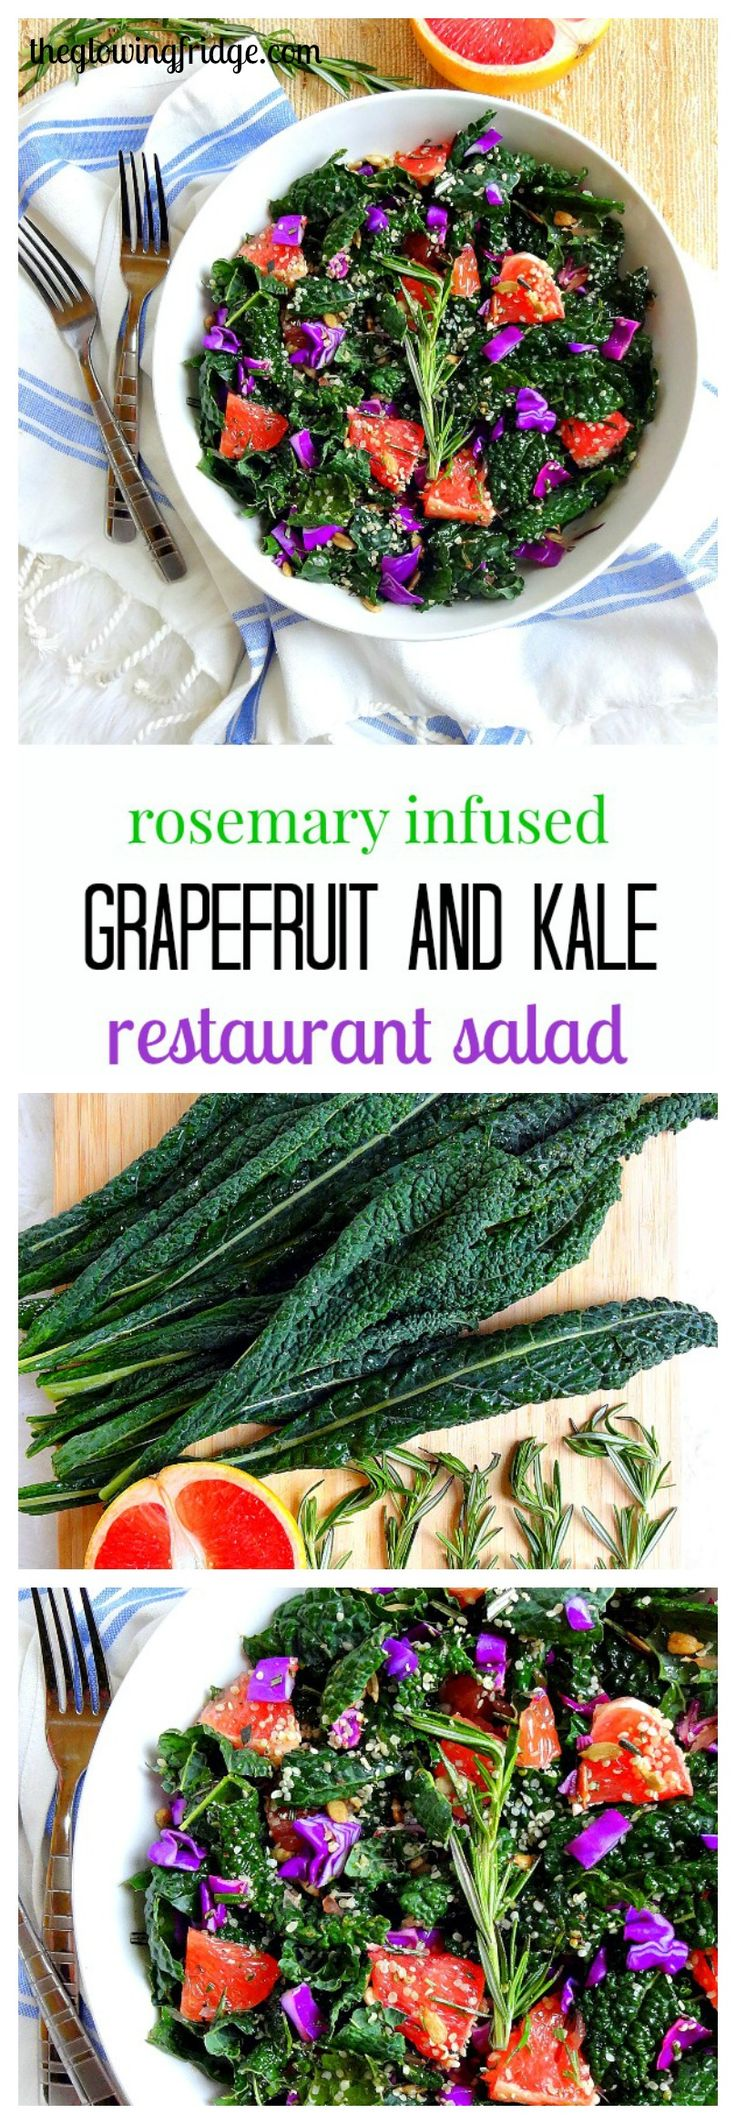 """Rosemary Infused Grapefruit and Kale """"Restaurant"""" Salad - A refreshing citrus plant based vegan salad infused with fresh rosemary, accompanied by juicy grapefruit, softened kale, hemp hearts, sunflower seeds and red cabbage. The rosemary citrus dressing pairs perfectly with this luxurious yet simple anytime salad."""